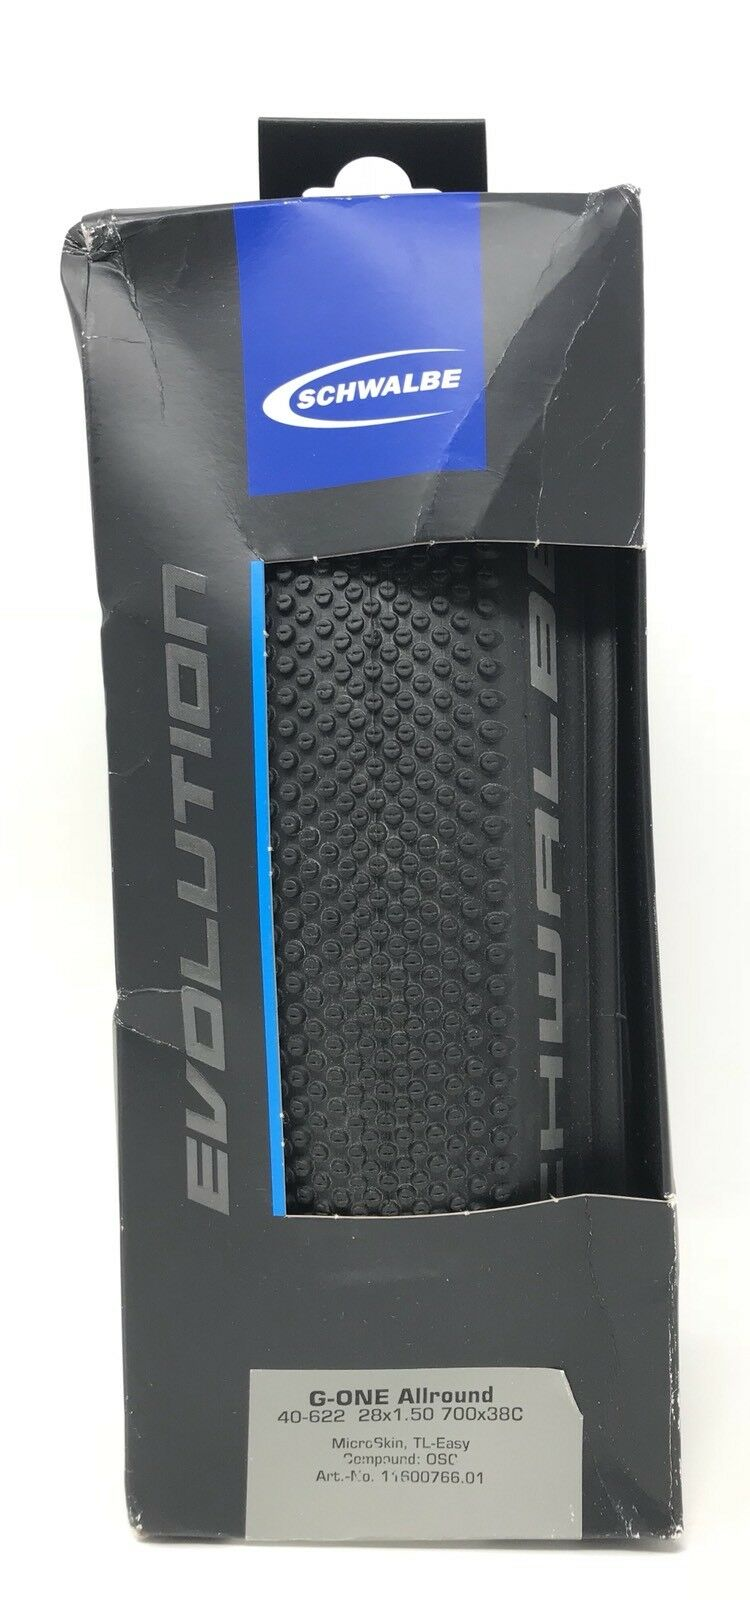 Schwalbe G-ONE  Allround Tire, 40-622 28x1.50 Tubeless Gravel Tire 700x38C  online at best price